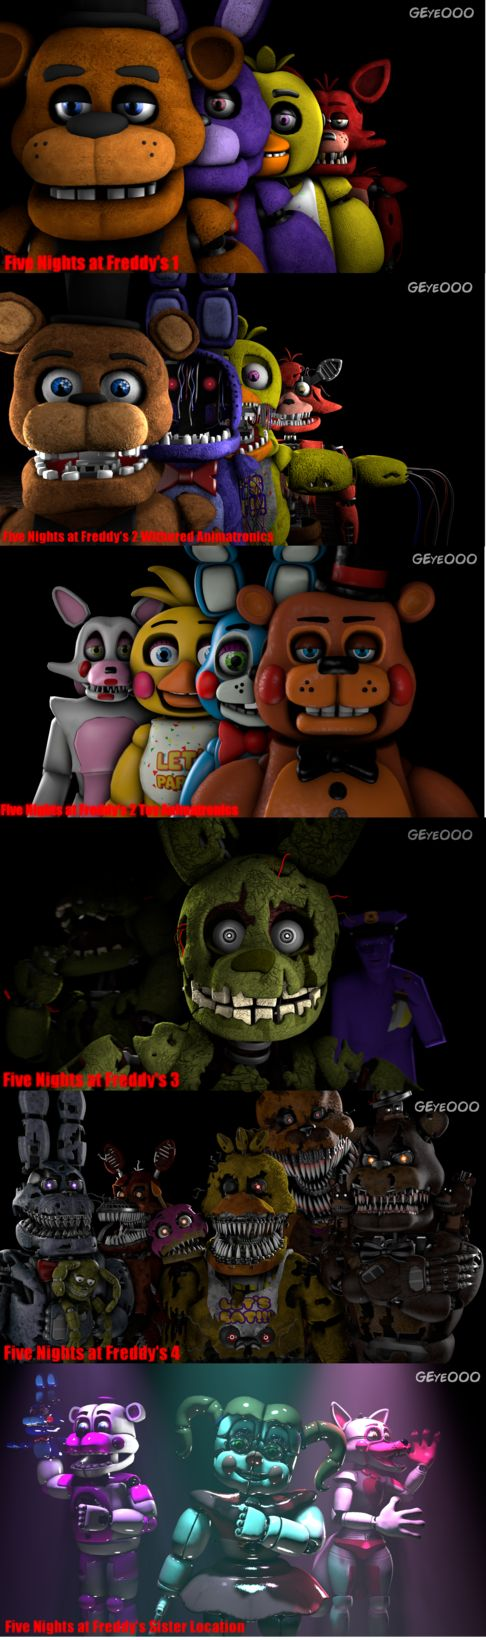 Five Nights at Freddy's Series by GoldenEye000